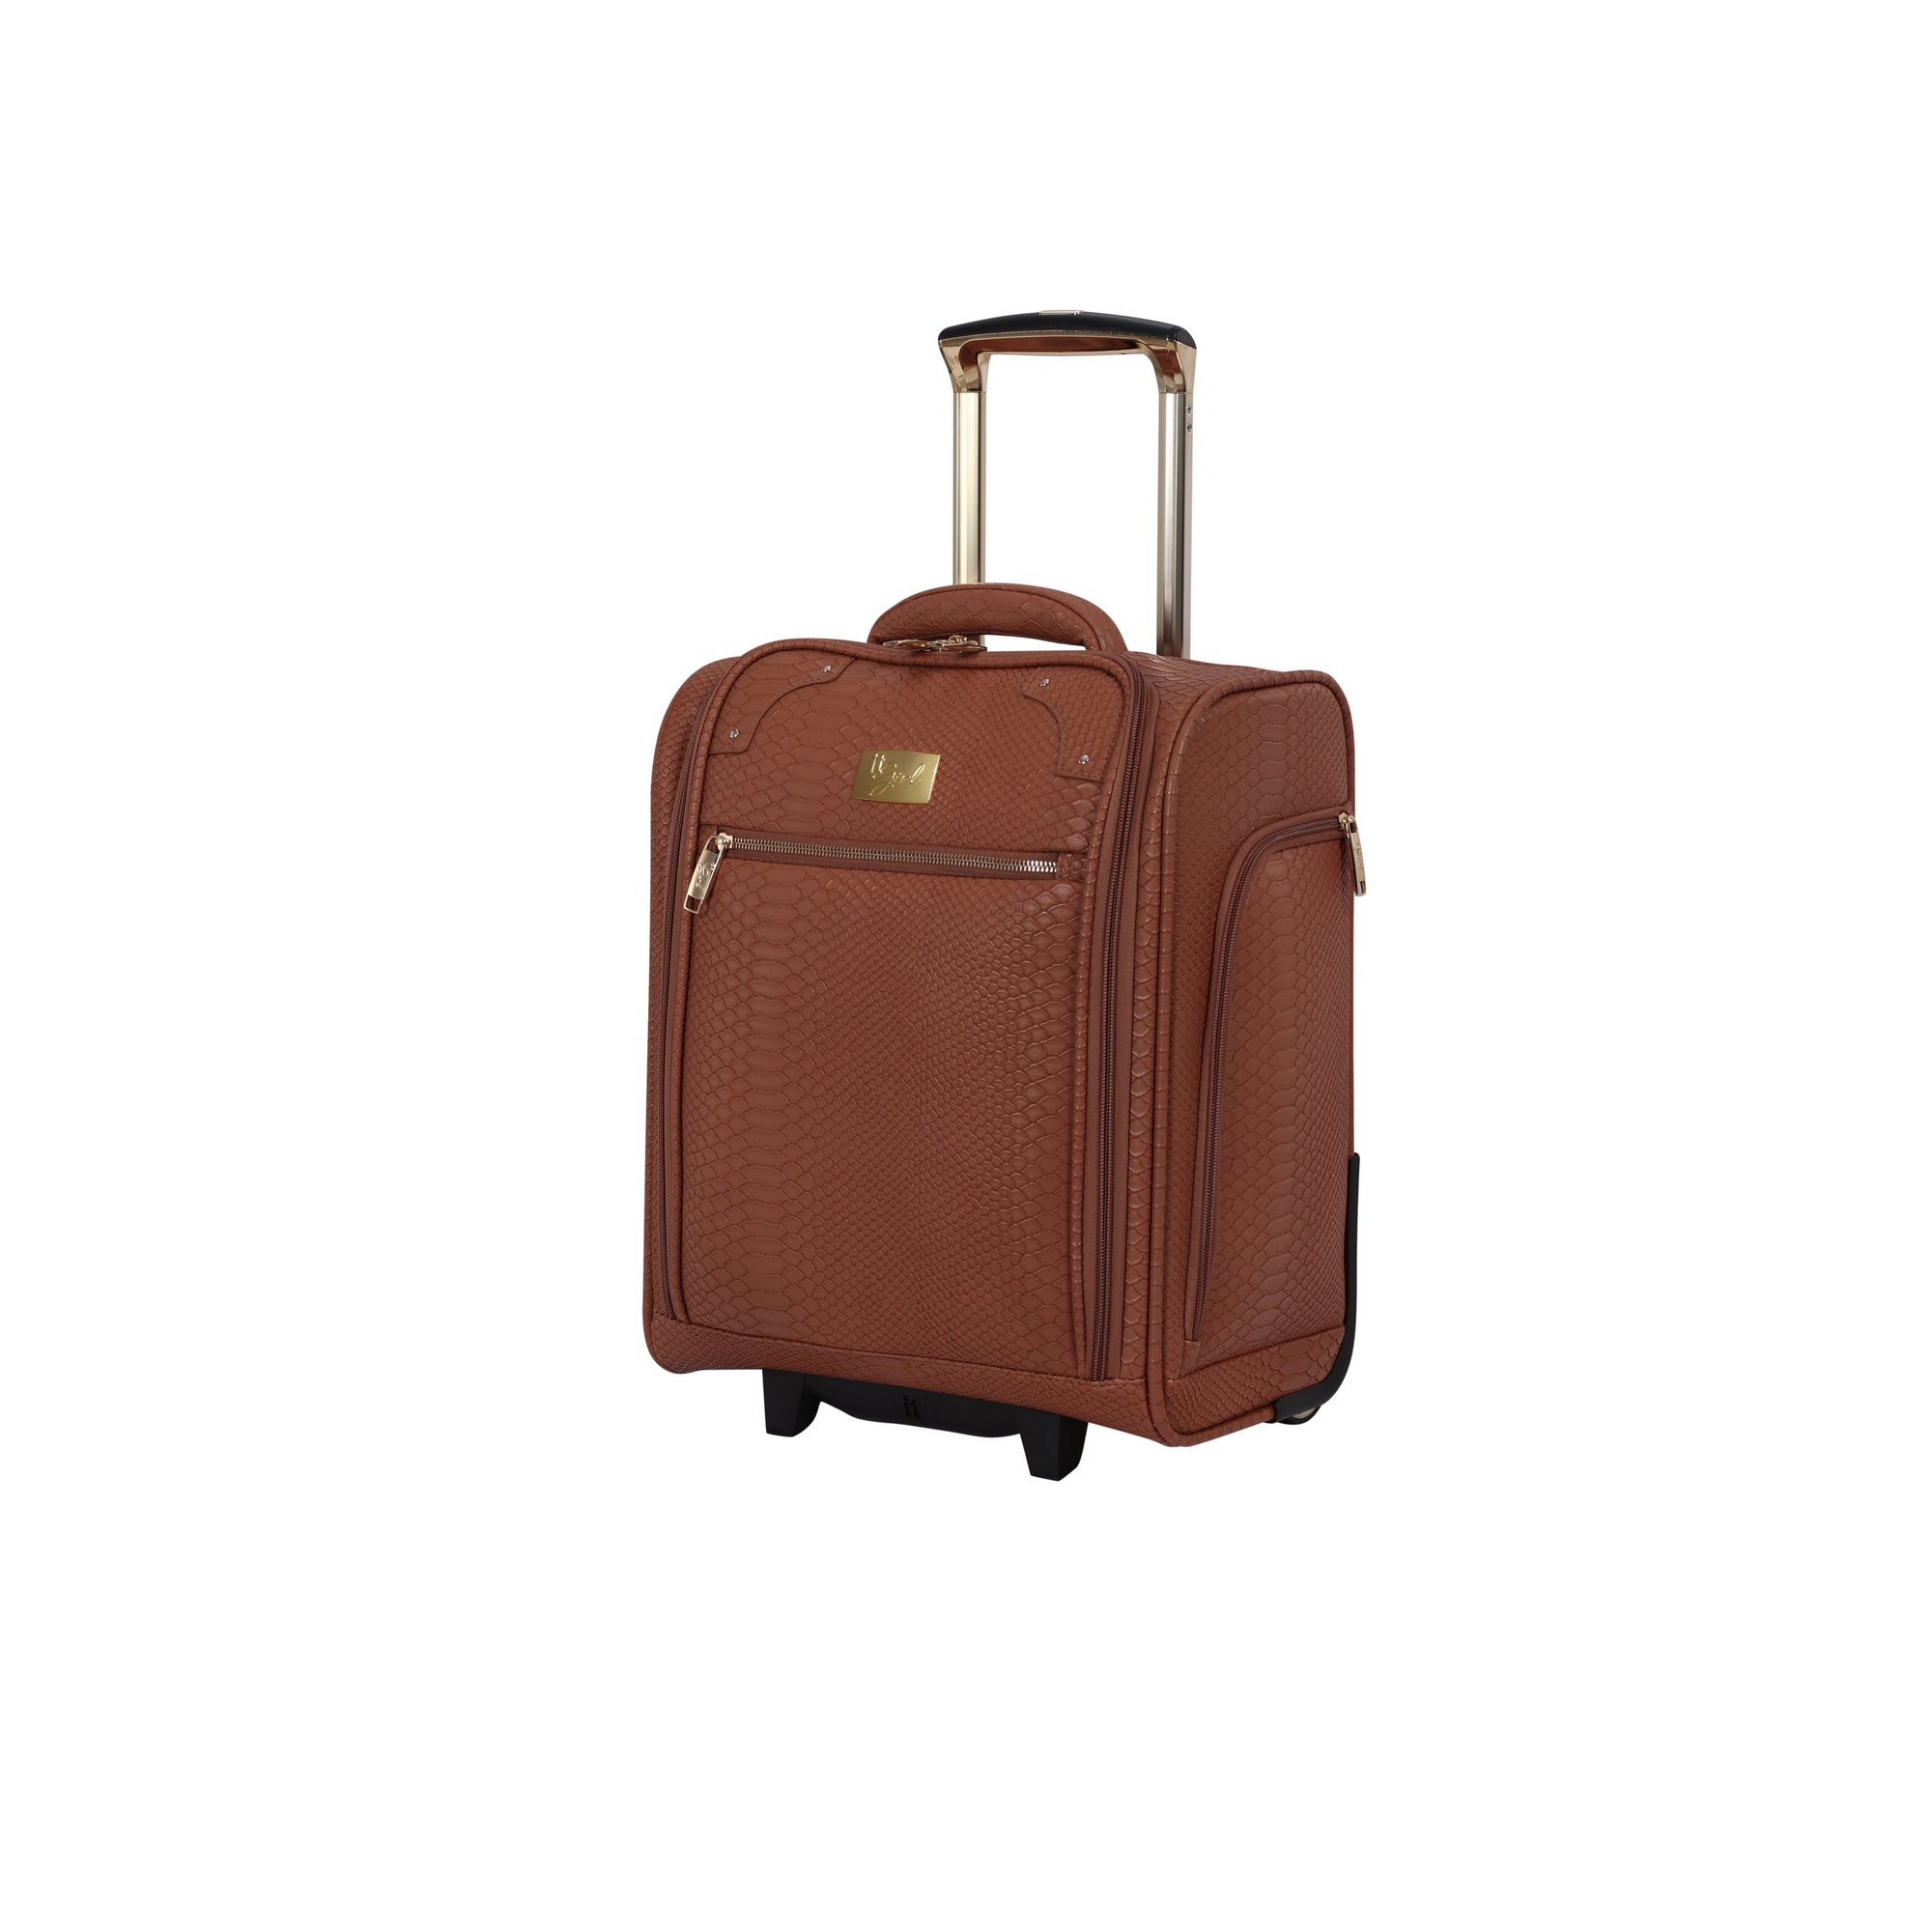 Image of It Girl Compelling Suitcase